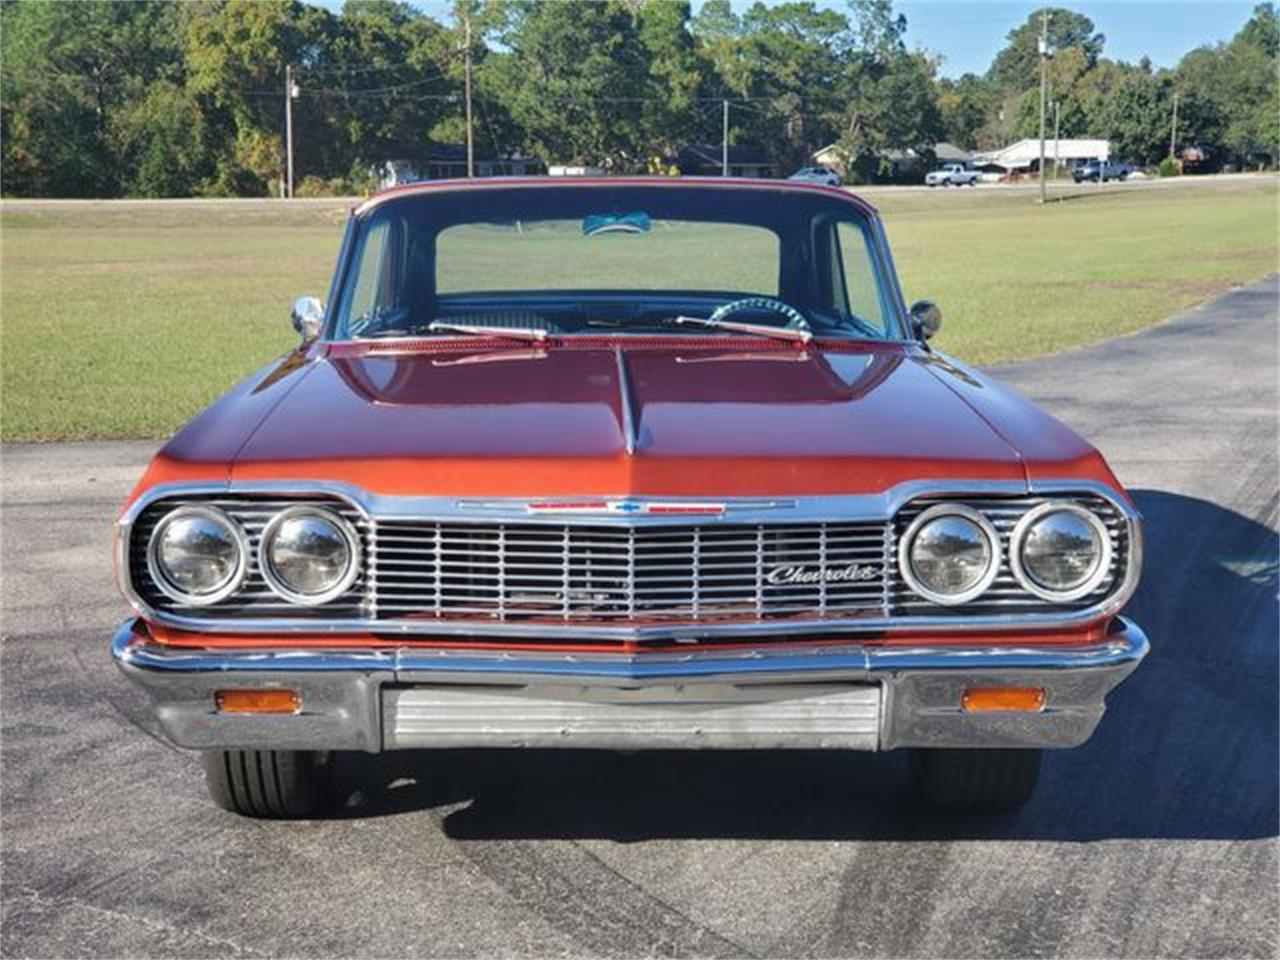 1964 Chevrolet Impala (CC-1297054) for sale in Hope Mills, North Carolina